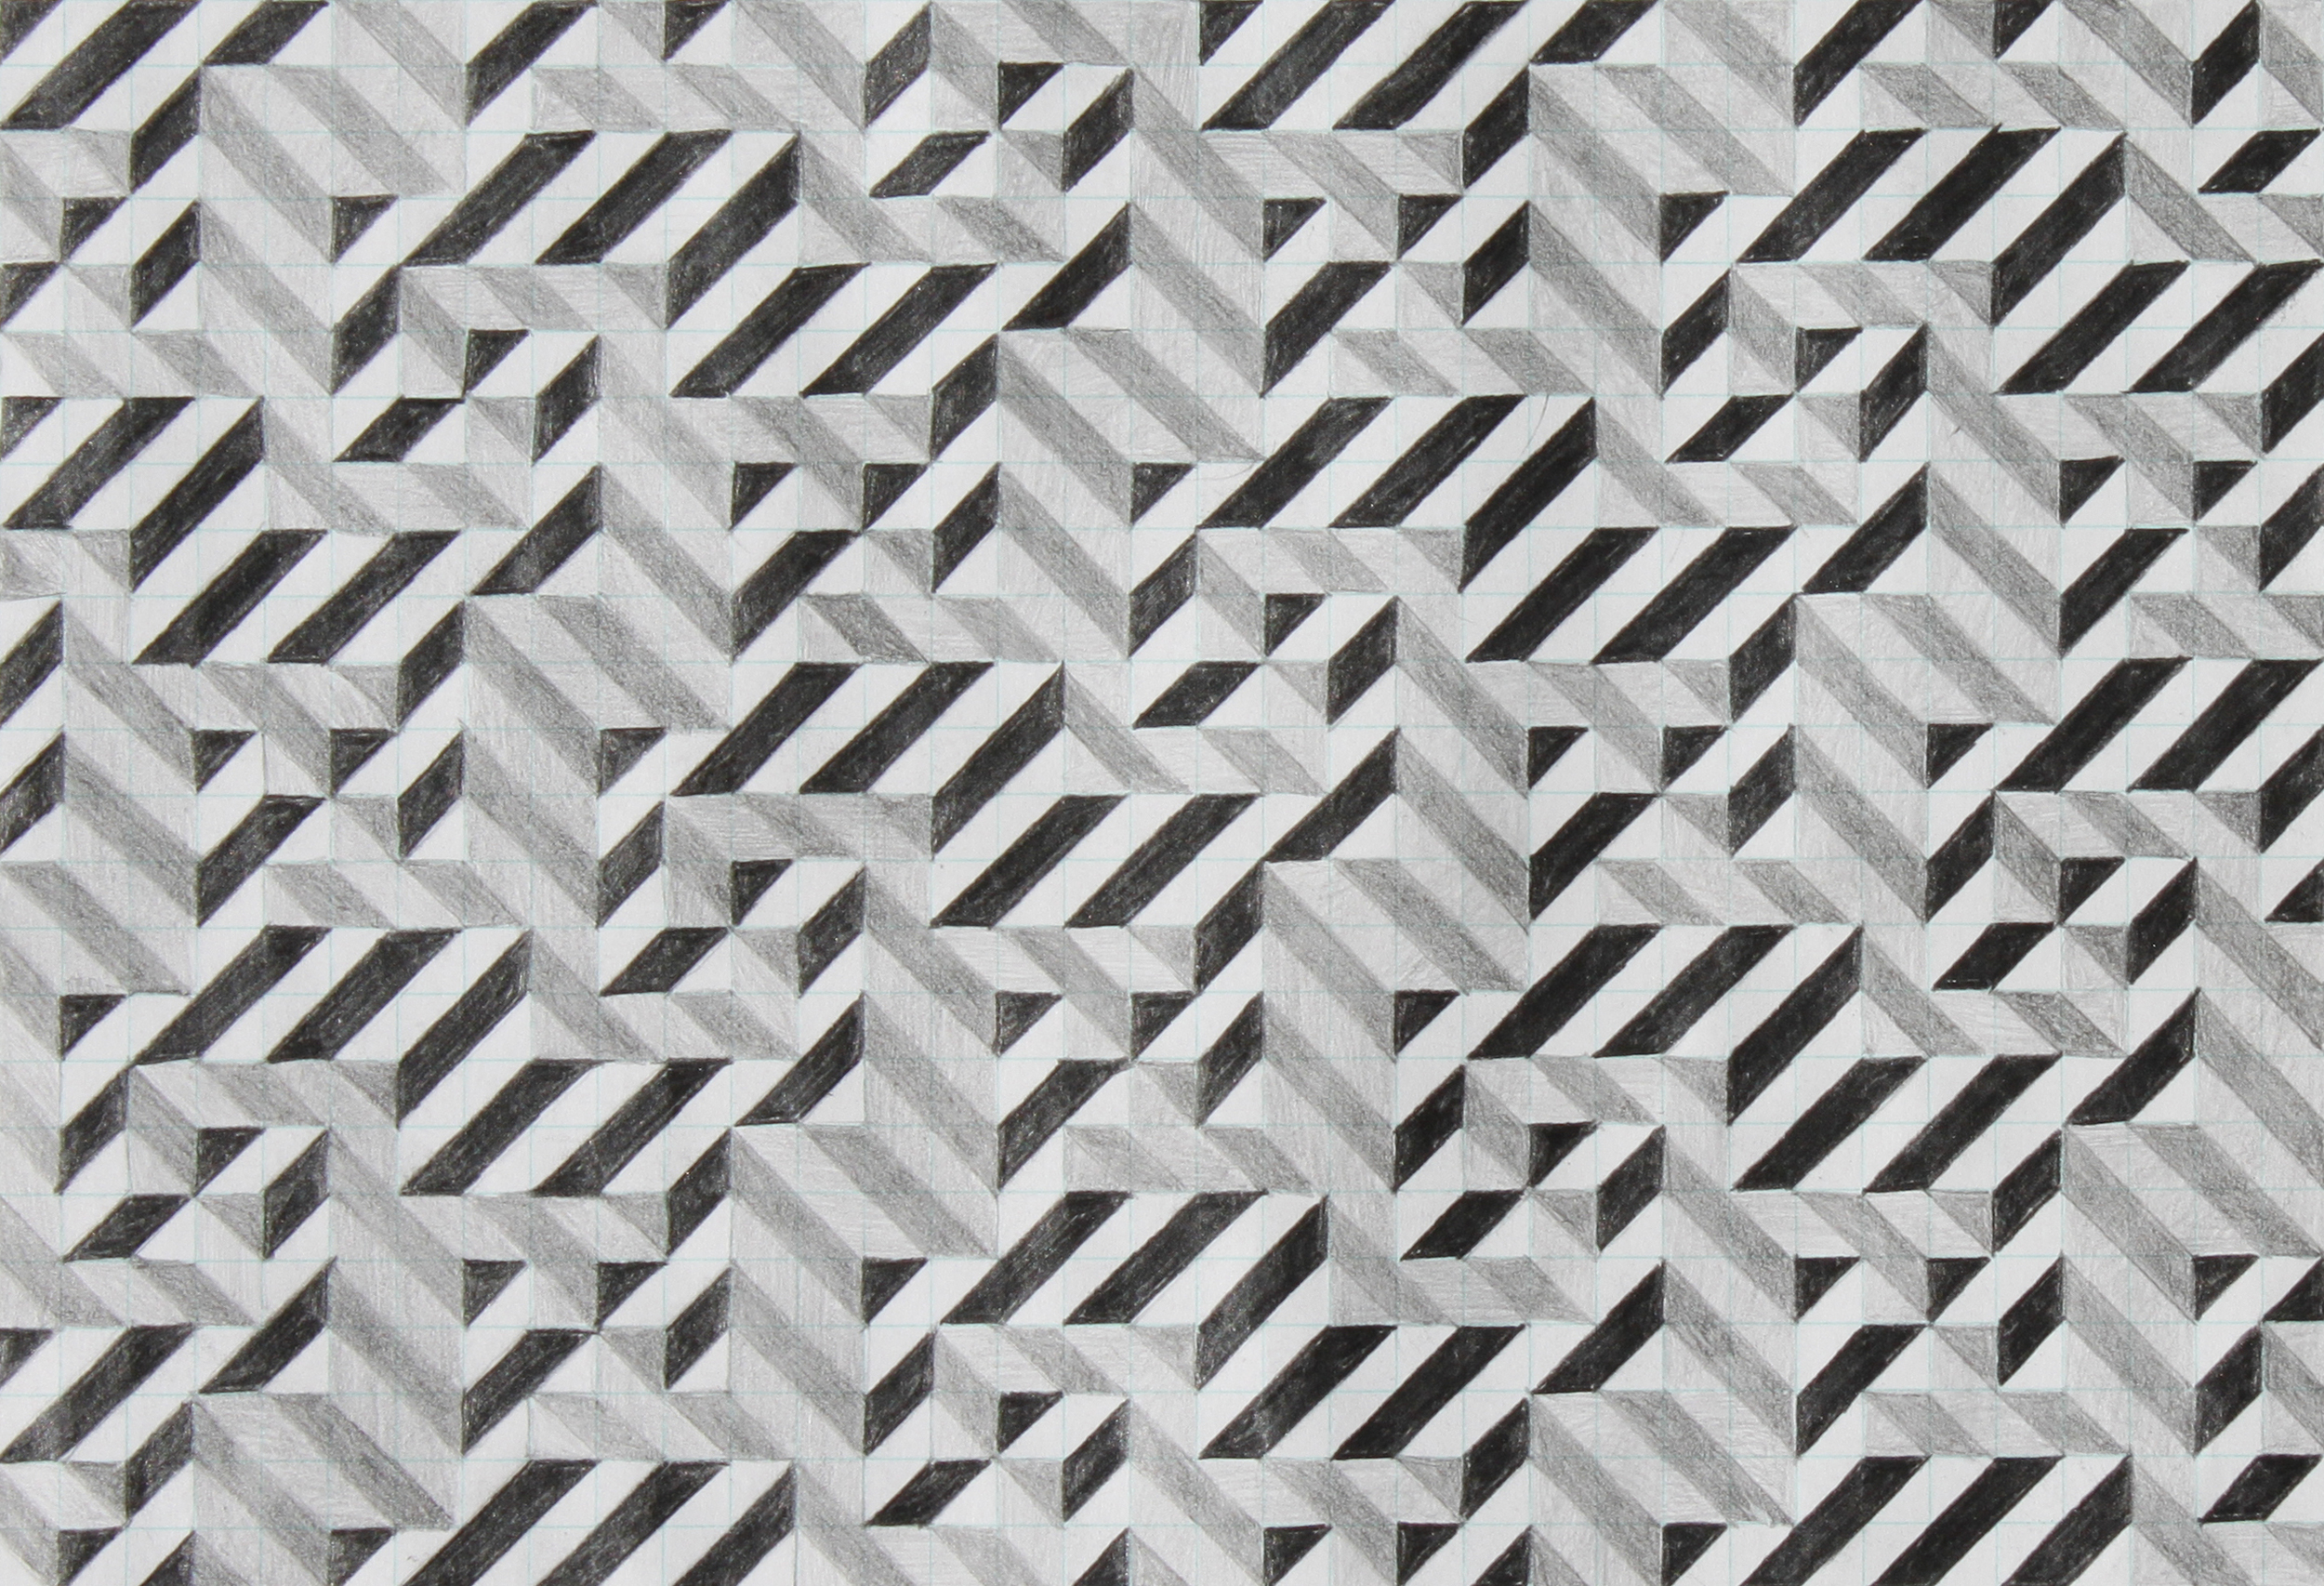 seven, 2007, graphite on paper, 6.25 x 9 inches